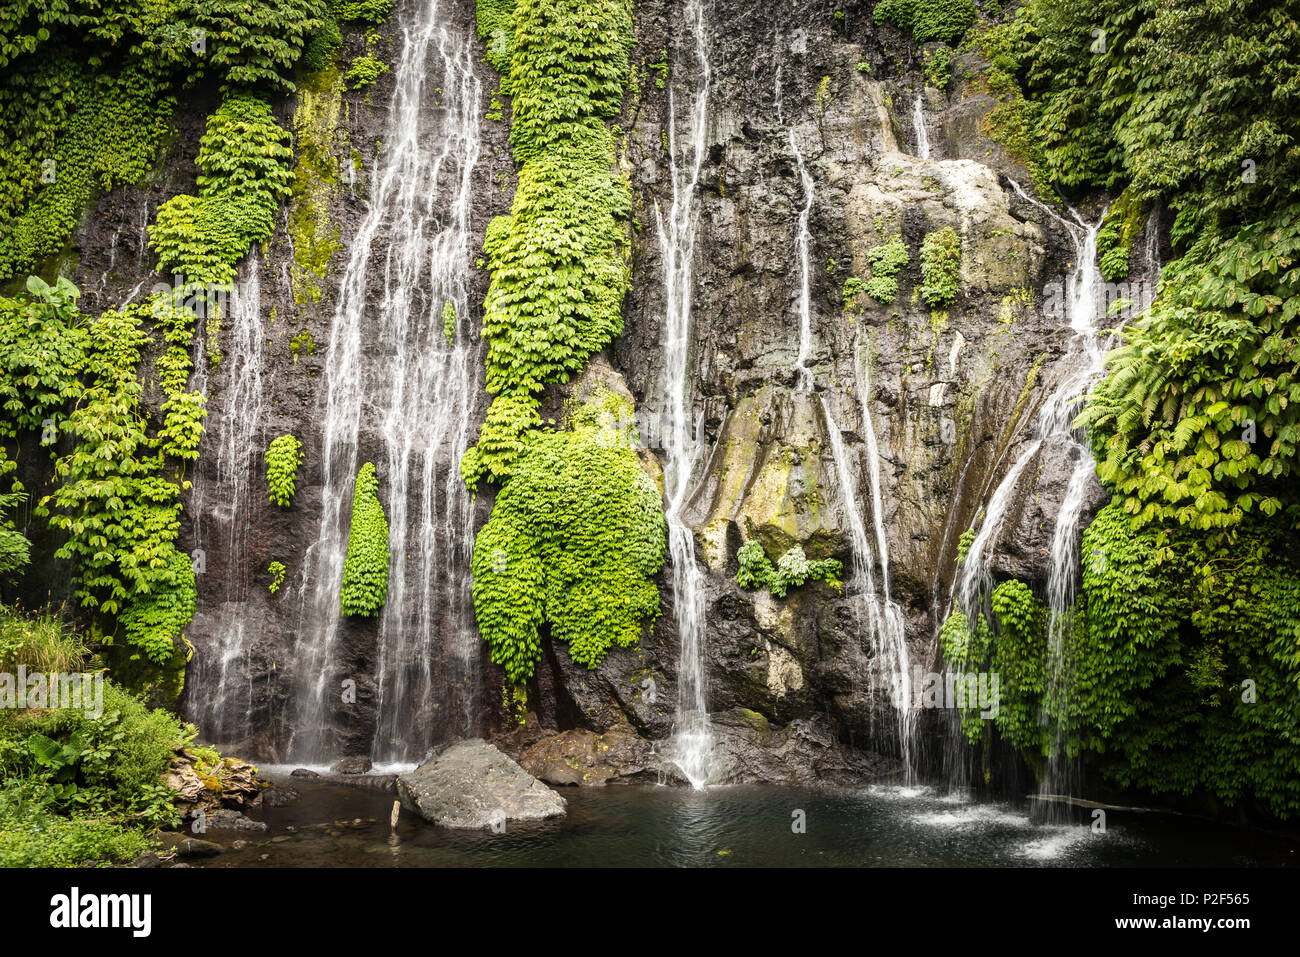 Waterfall trickle with thick vegetation - Indonesia, Java - Stock Image